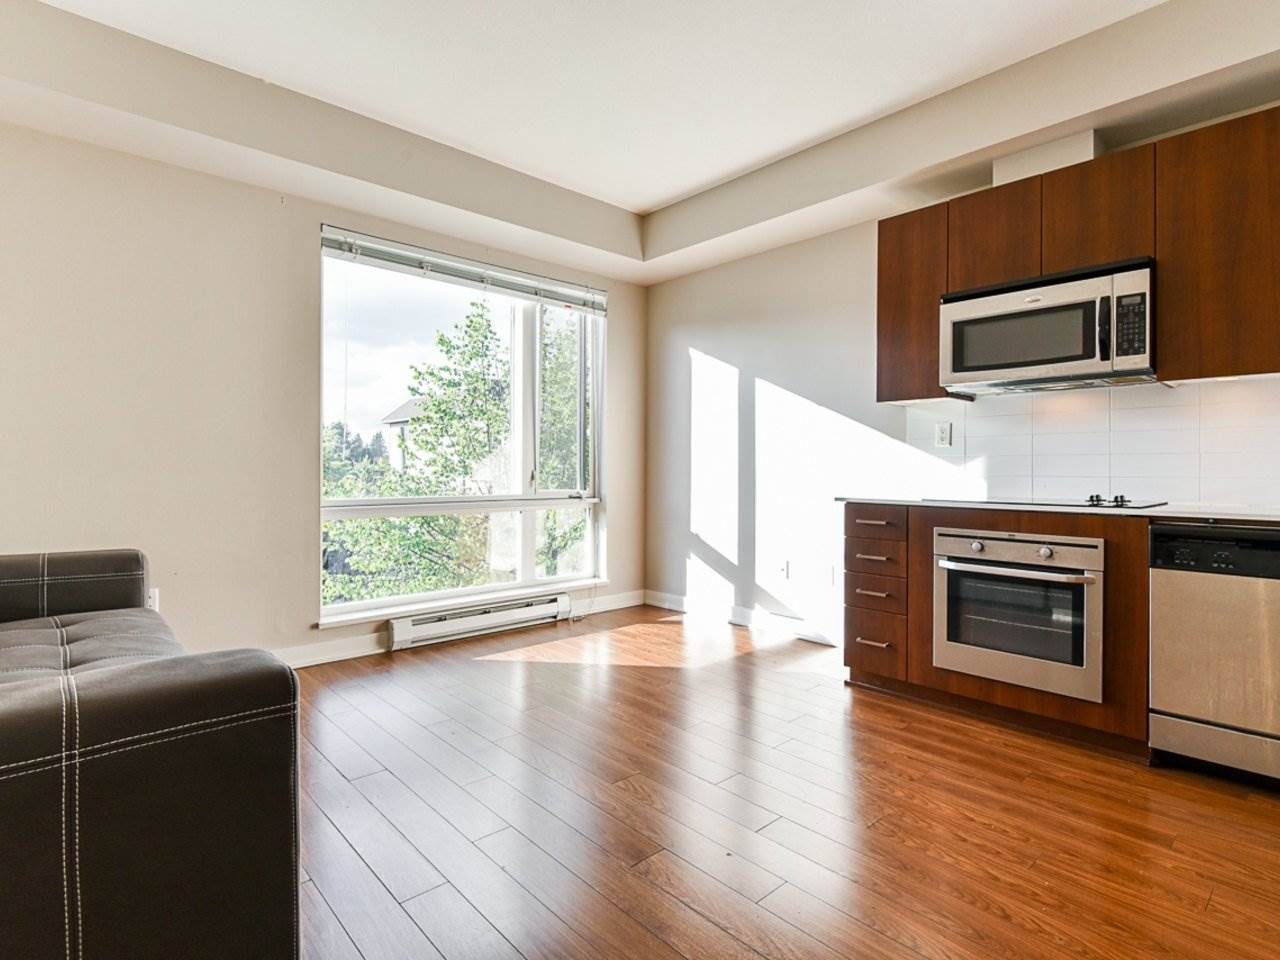 329 13321 102A AVENUE - Whalley Apartment/Condo for sale, 1 Bedroom (R2508611) - #1